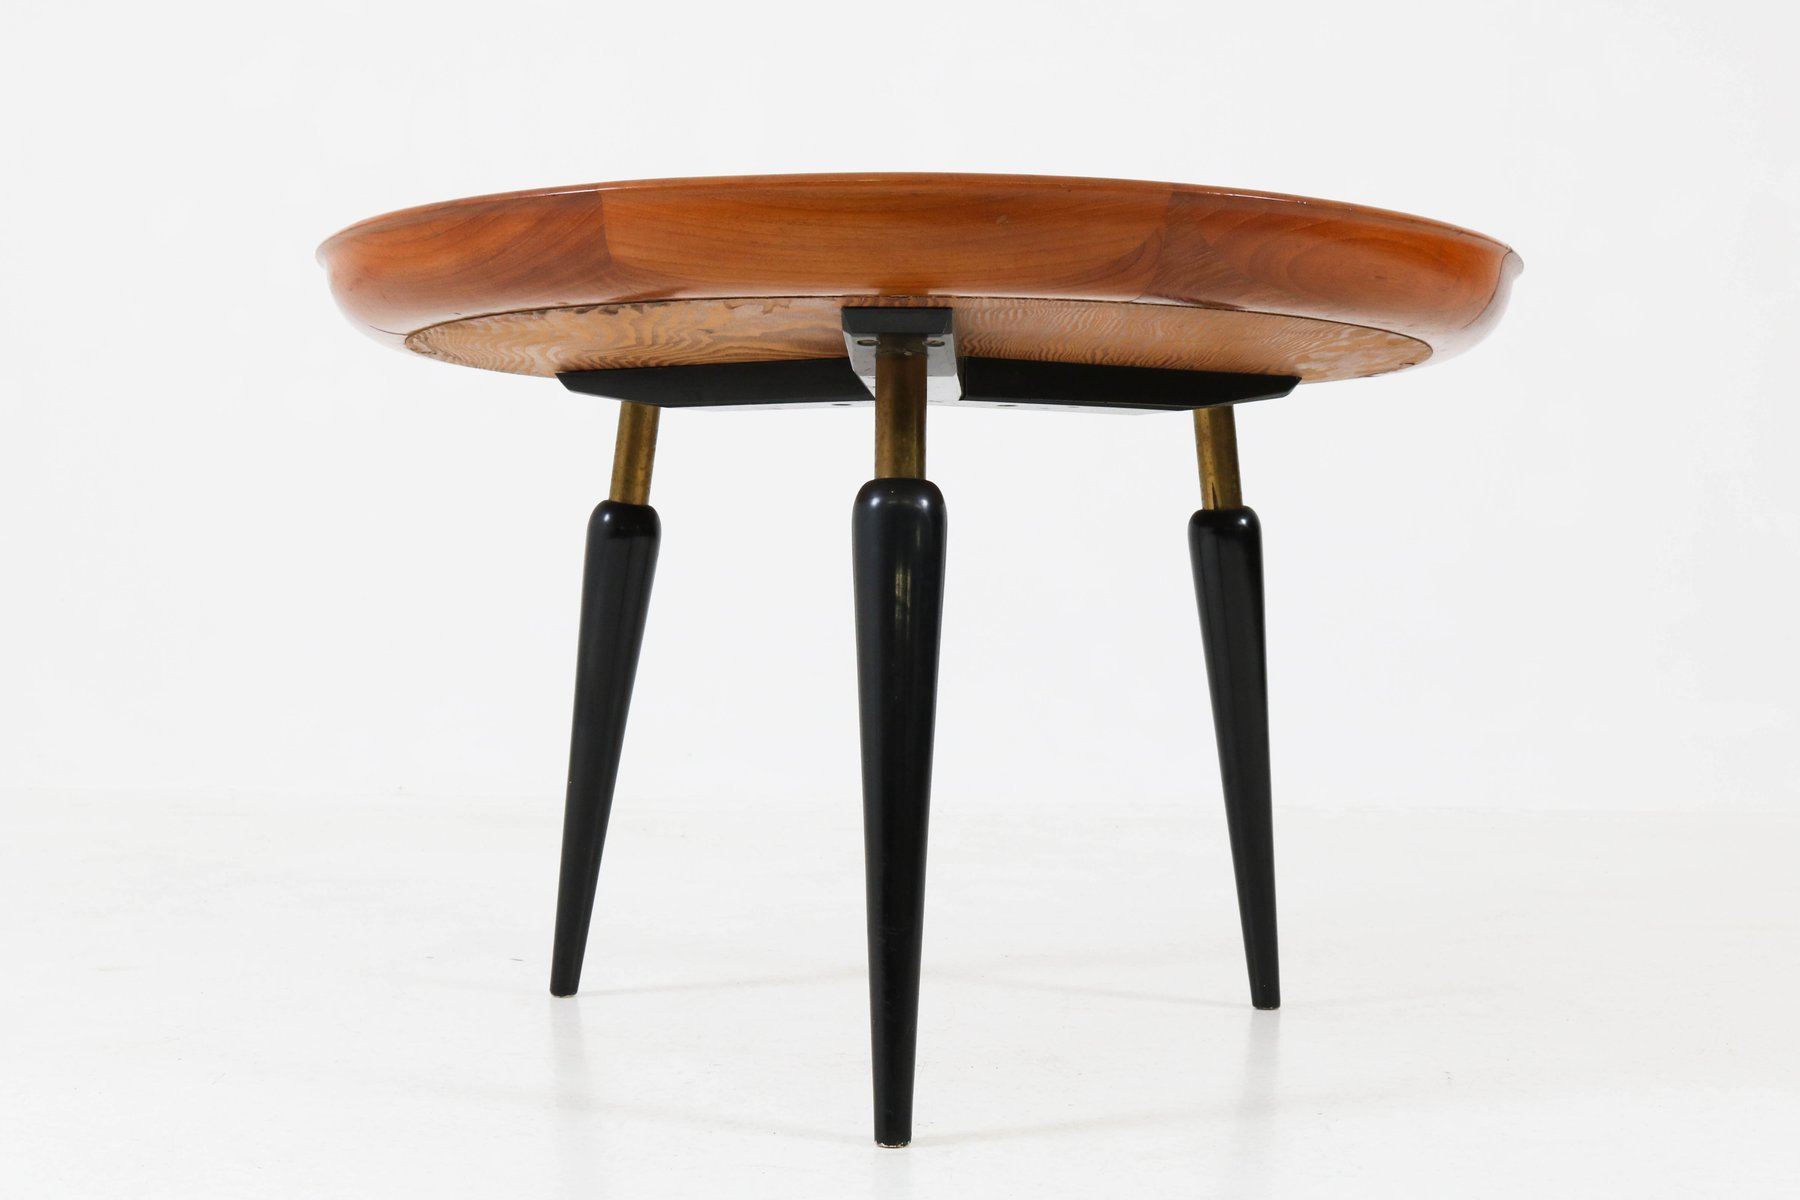 Italian Mid Century Modern Fruitwood Coffee Table With Inlay 1950s 7 2 719 00 Price Per Piece